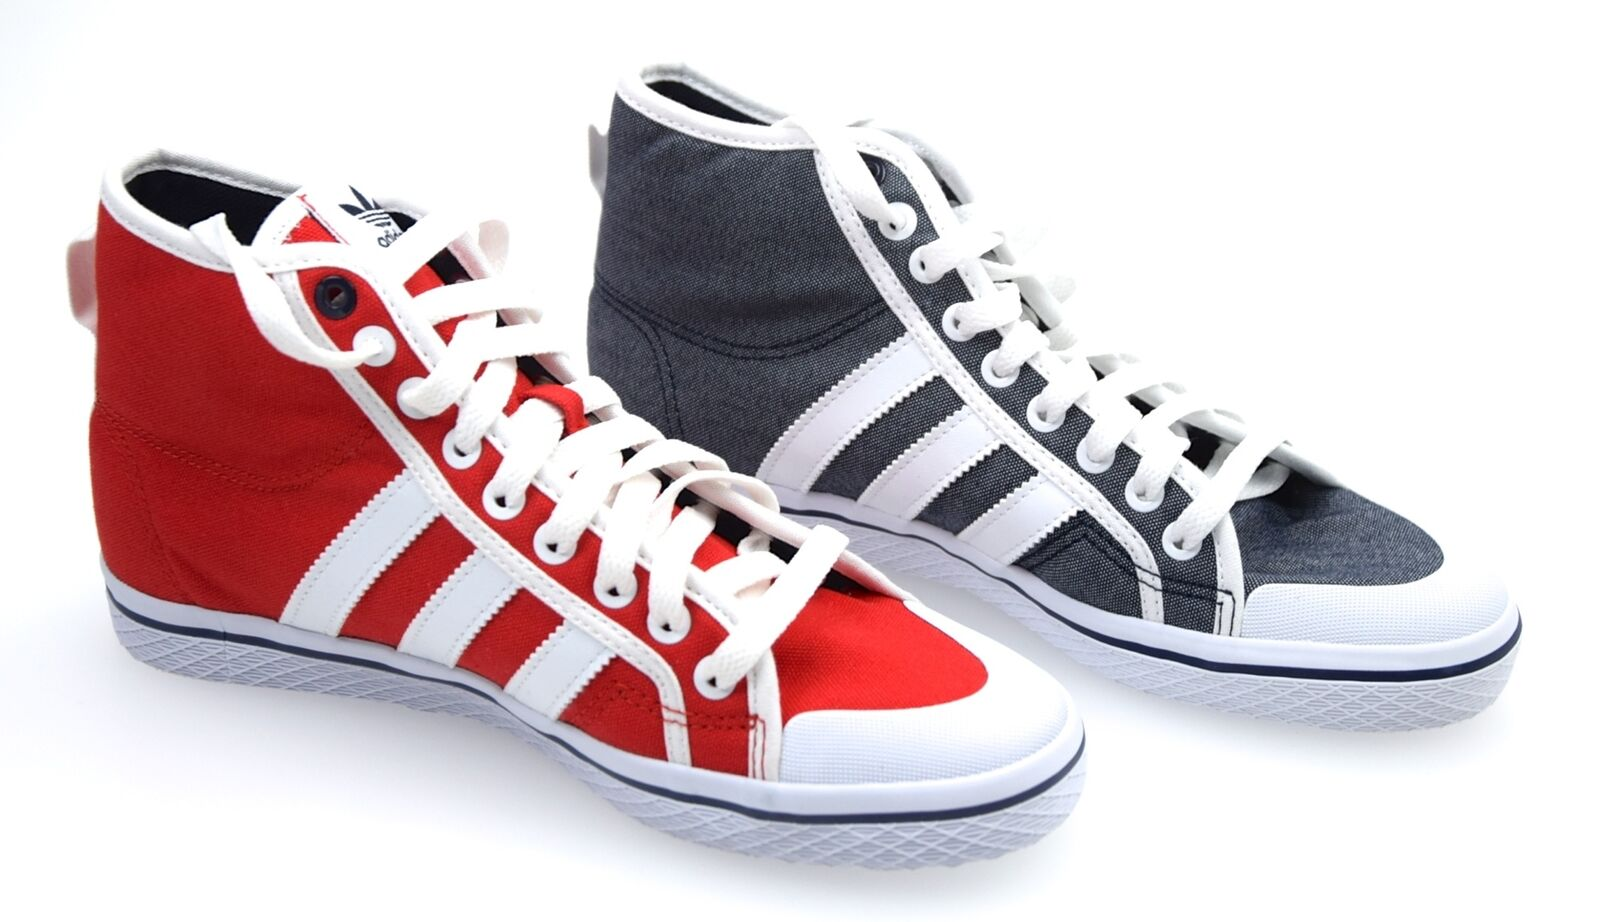 ADIDAS WOMAN CASUAL SNEAKER SHOES FREE TIME COTTON CODE Q23316 - Q23318